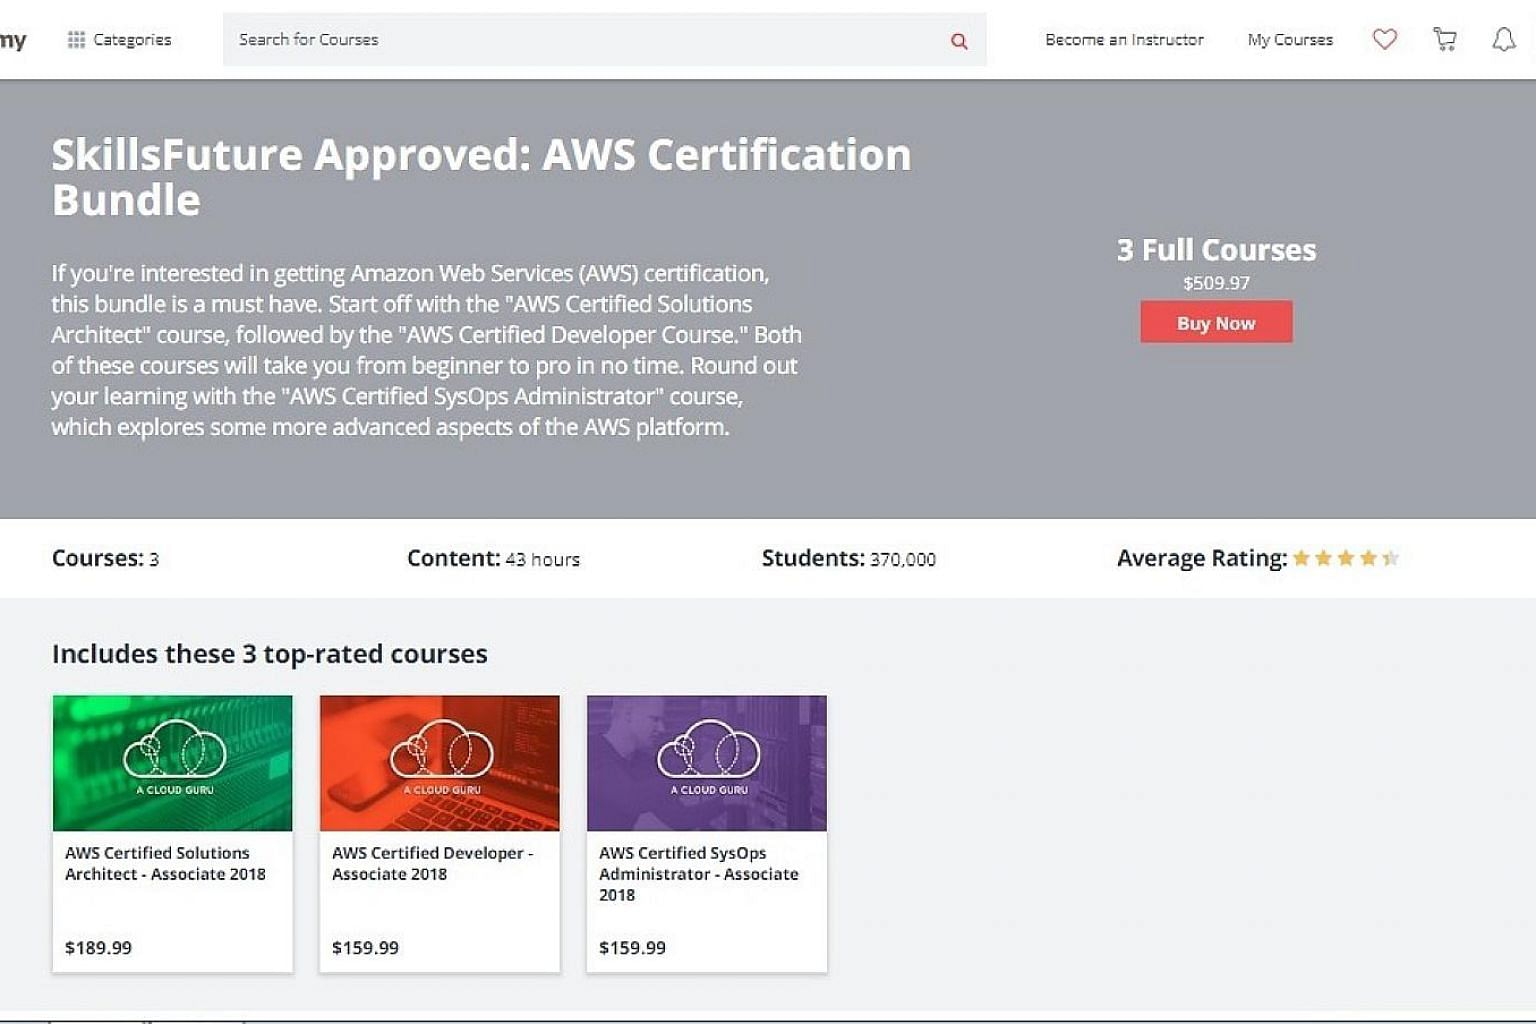 A screenshot of Udemy's website showing the SkillsFuture-approved AWS (Amazon Web Services) Certification Bundle course priced at $509.97. The portal had a promotion earlier that had offered the same three courses in the bundle for just $17.99 each.